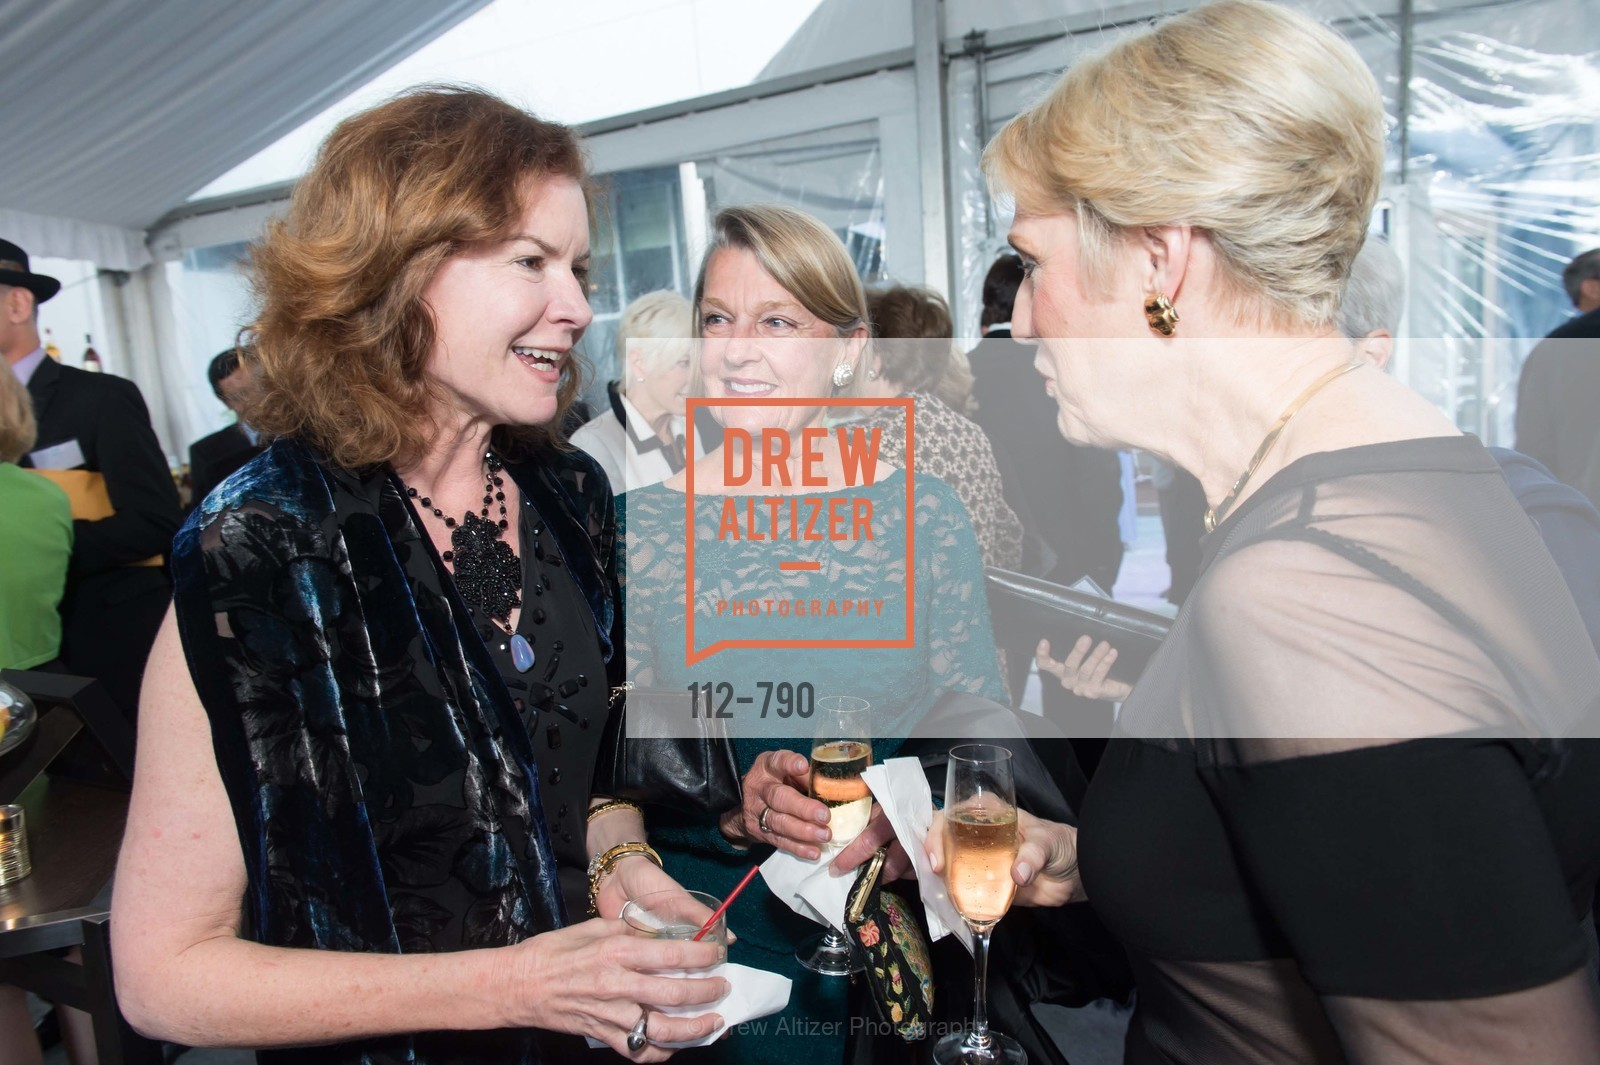 Katherine Munter, Danette Magilligan, Arlette Monfredini, Post War and Contemporary Preview at HEDGE GALLERY, US, April 15th, 2015,Drew Altizer, Drew Altizer Photography, full-service agency, private events, San Francisco photographer, photographer california